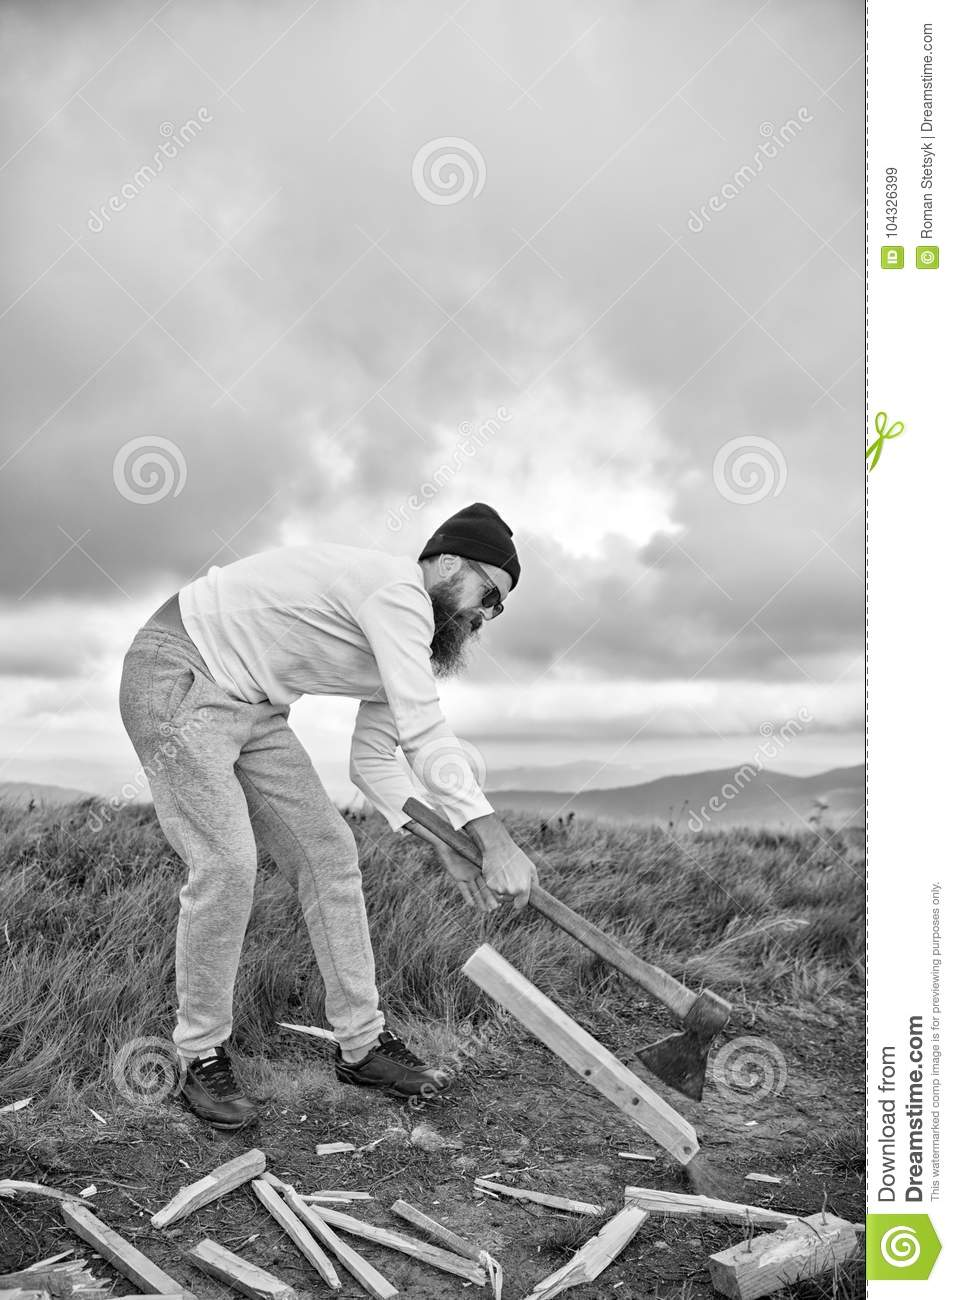 Hipster bearded man chop wood with axe on mountain landscape